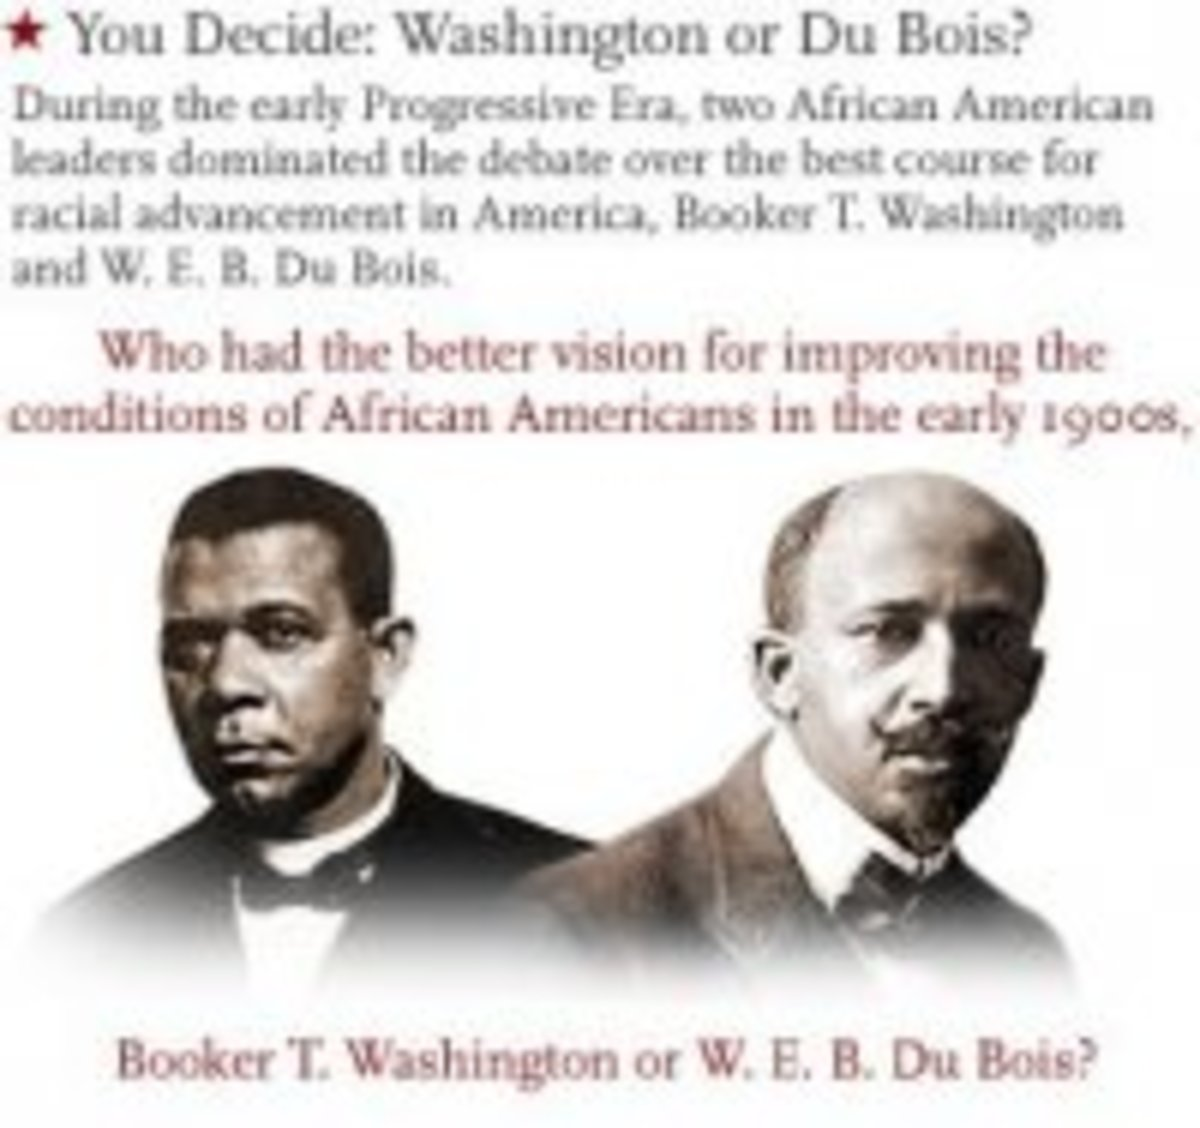 What were the methods used by W.E.B. Du Bois in America?